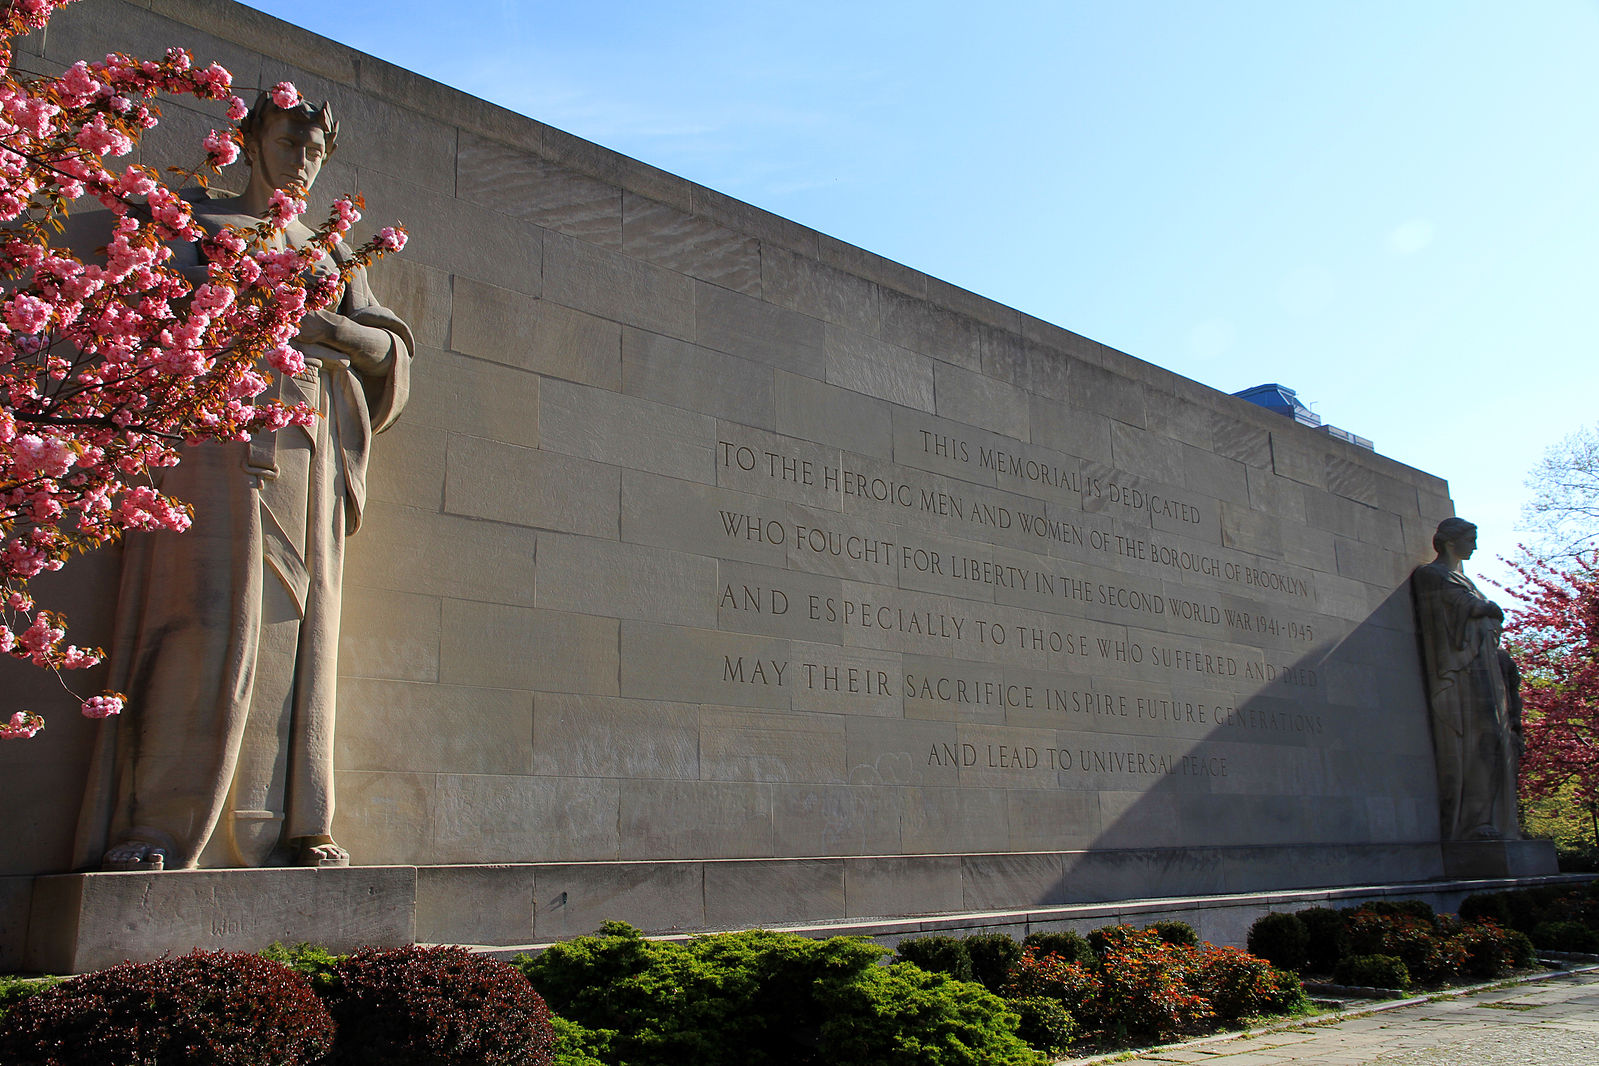 The writing seen in this picture dedicates the monument to the Brooklyn service men and women of World War II.